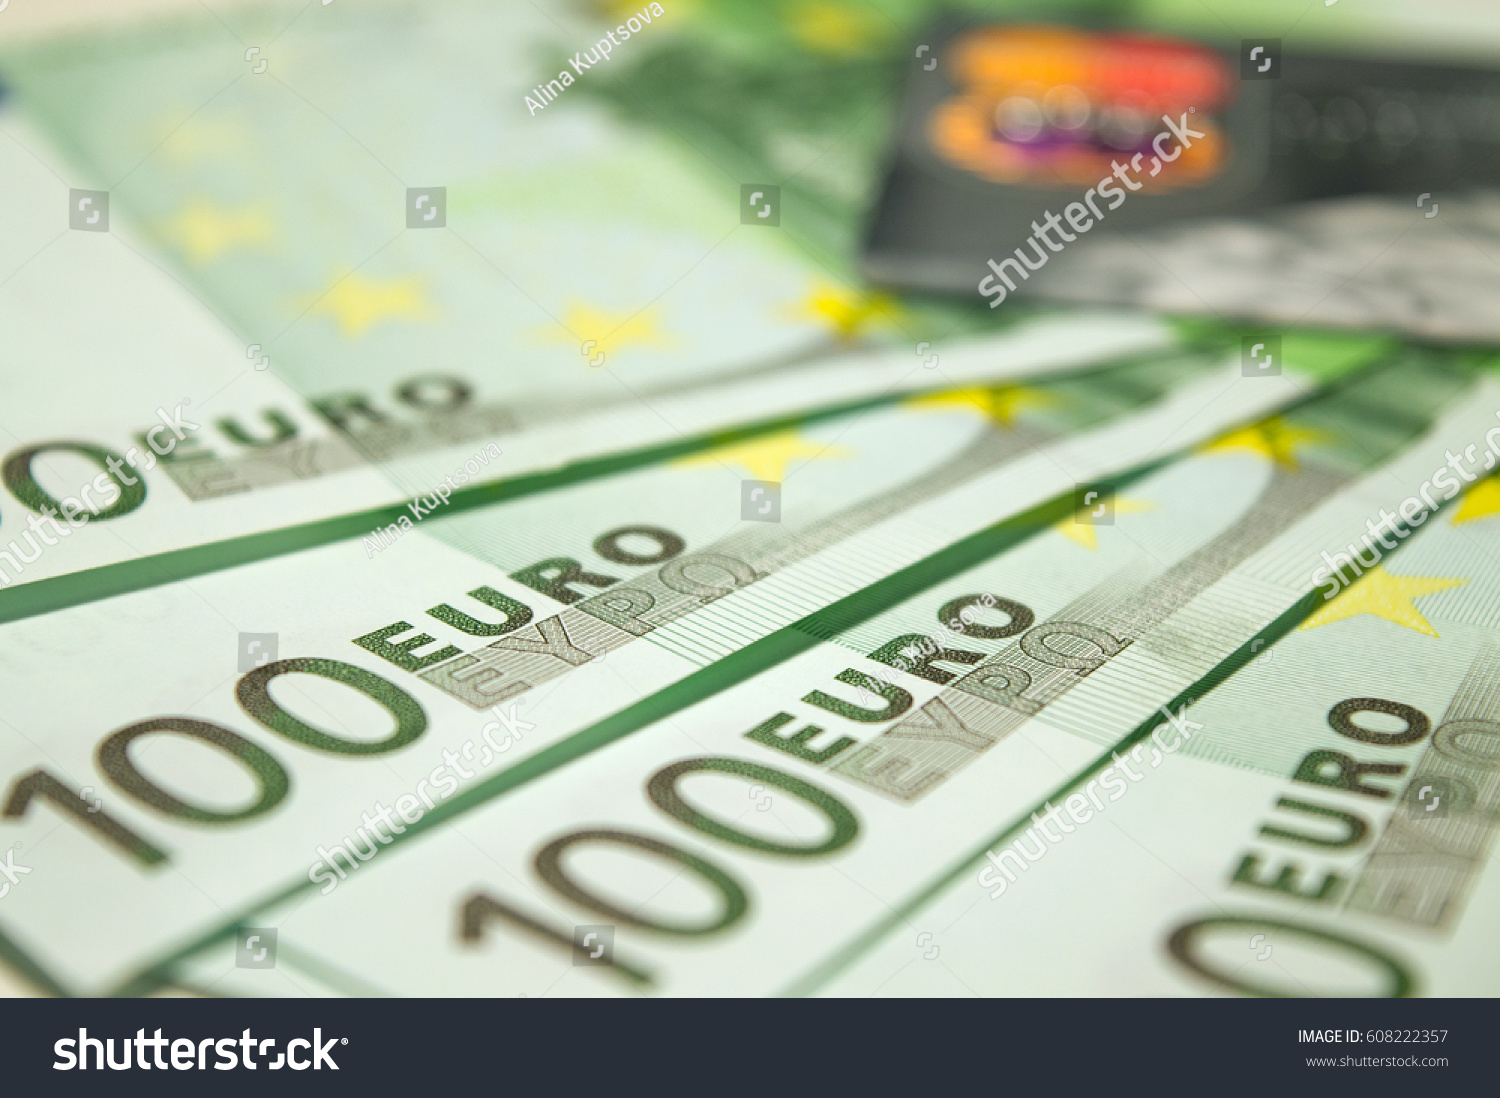 Currency and symbol choice image symbol and sign ideas 100 euro banknotes plastic credit card stock photo 608222357 100 euro banknotes and plastic credit card buycottarizona